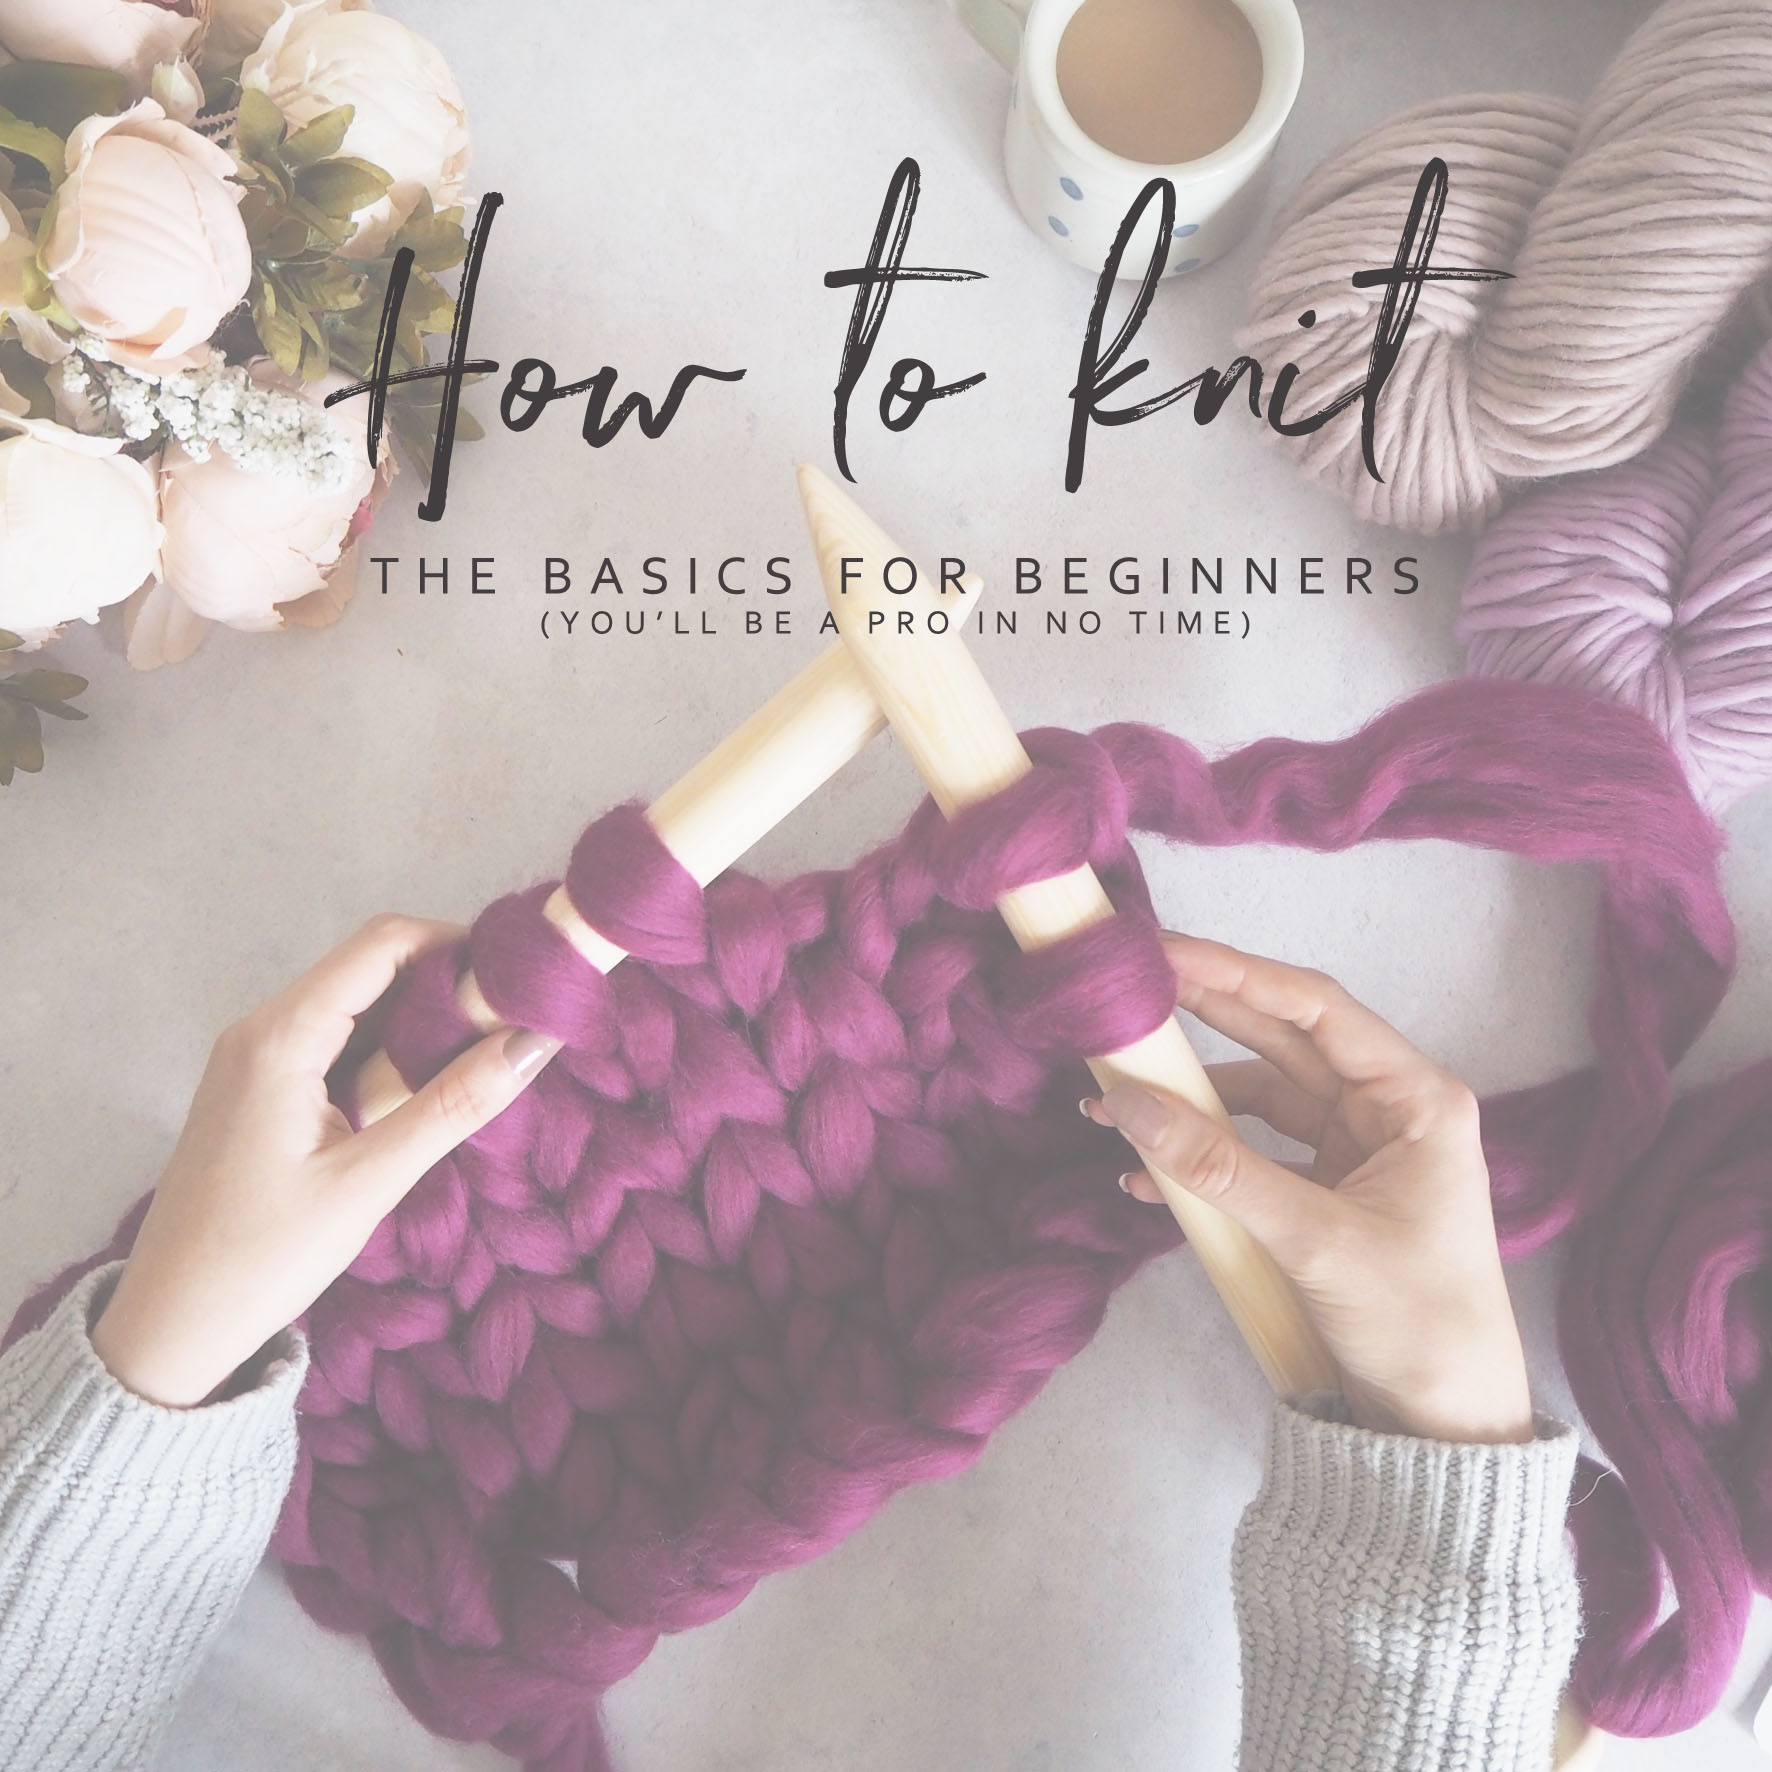 You could learn how to knit! (obviously one of my favourite things to do) It's a year round activity that is great for mental health, creativity and gifts!